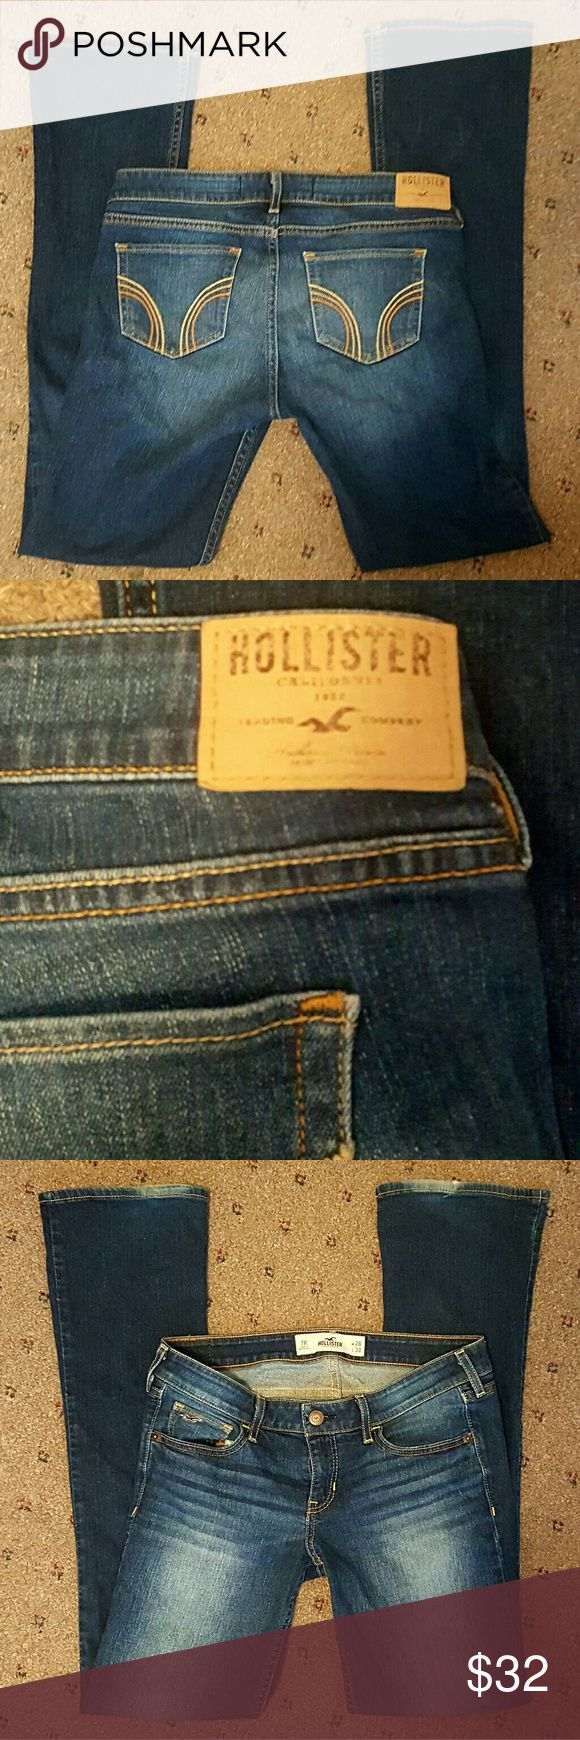 Hollister Boot Cut Jeans Worn just a handful of times. Nothing wrong other than bottom hem showing wear (pictured) W:28 L:33 Willing to trade. Hollister Jeans Boot Cut